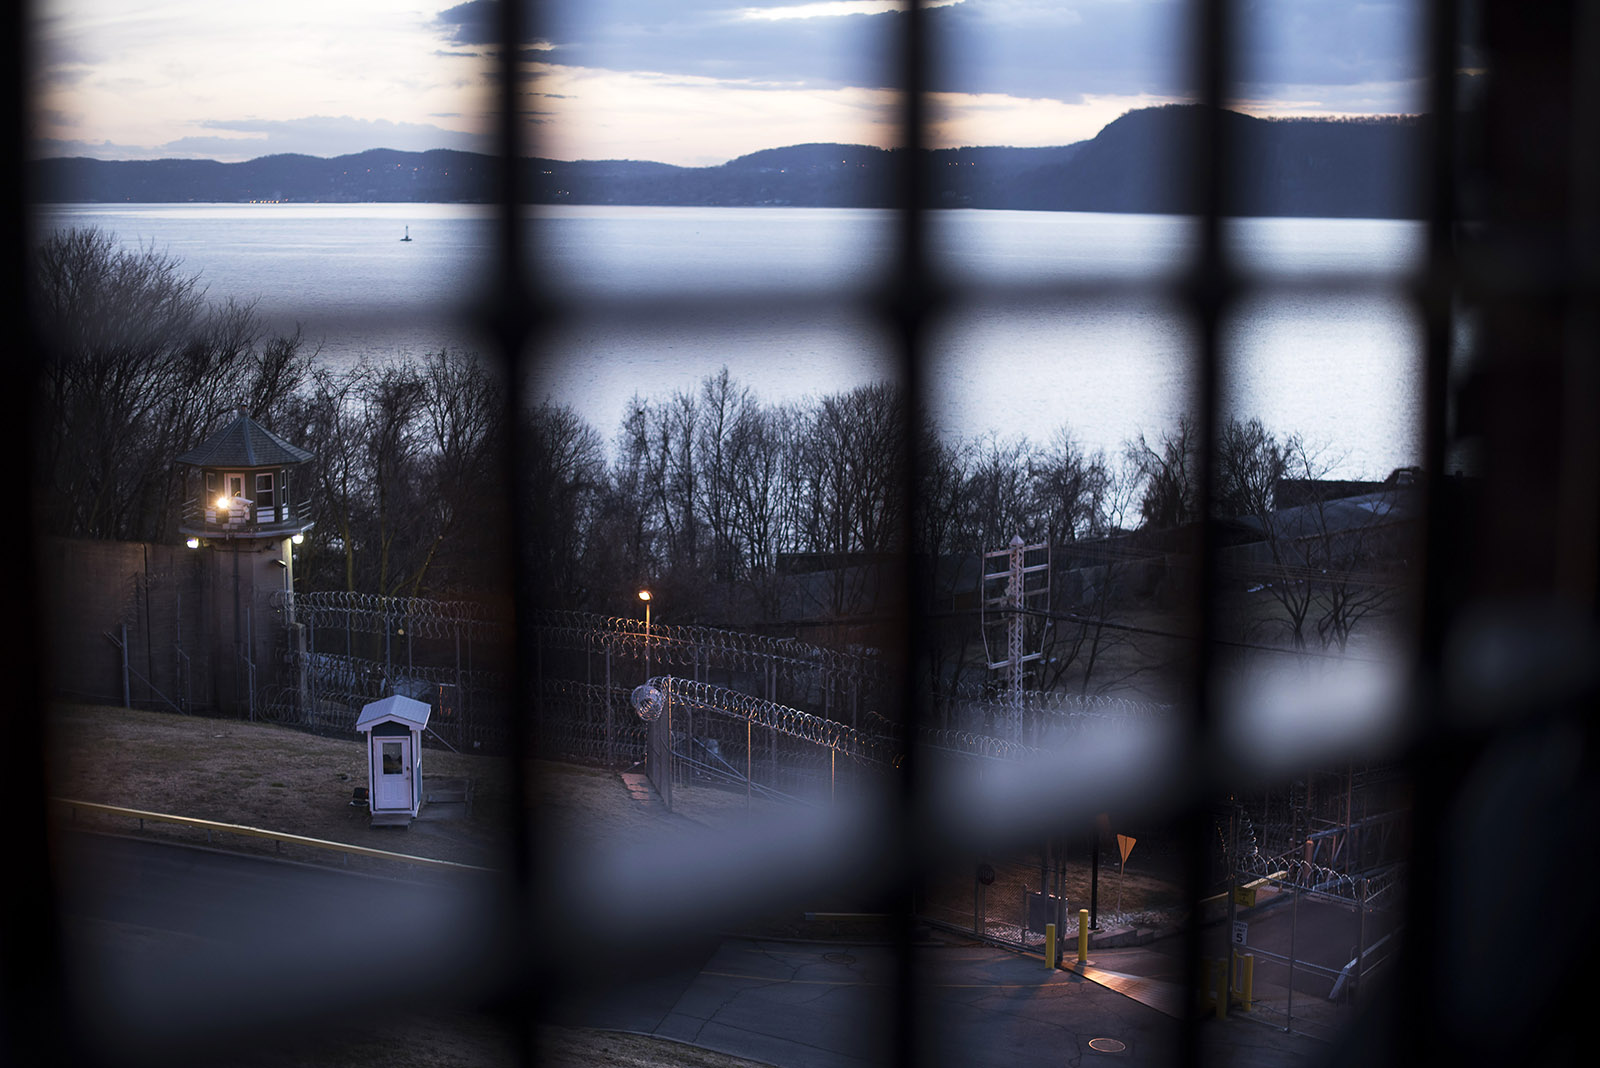 A view of the Hudson River through a window from the Sing Sing Correctional Facility, Ossining, New York, February 24, 2017